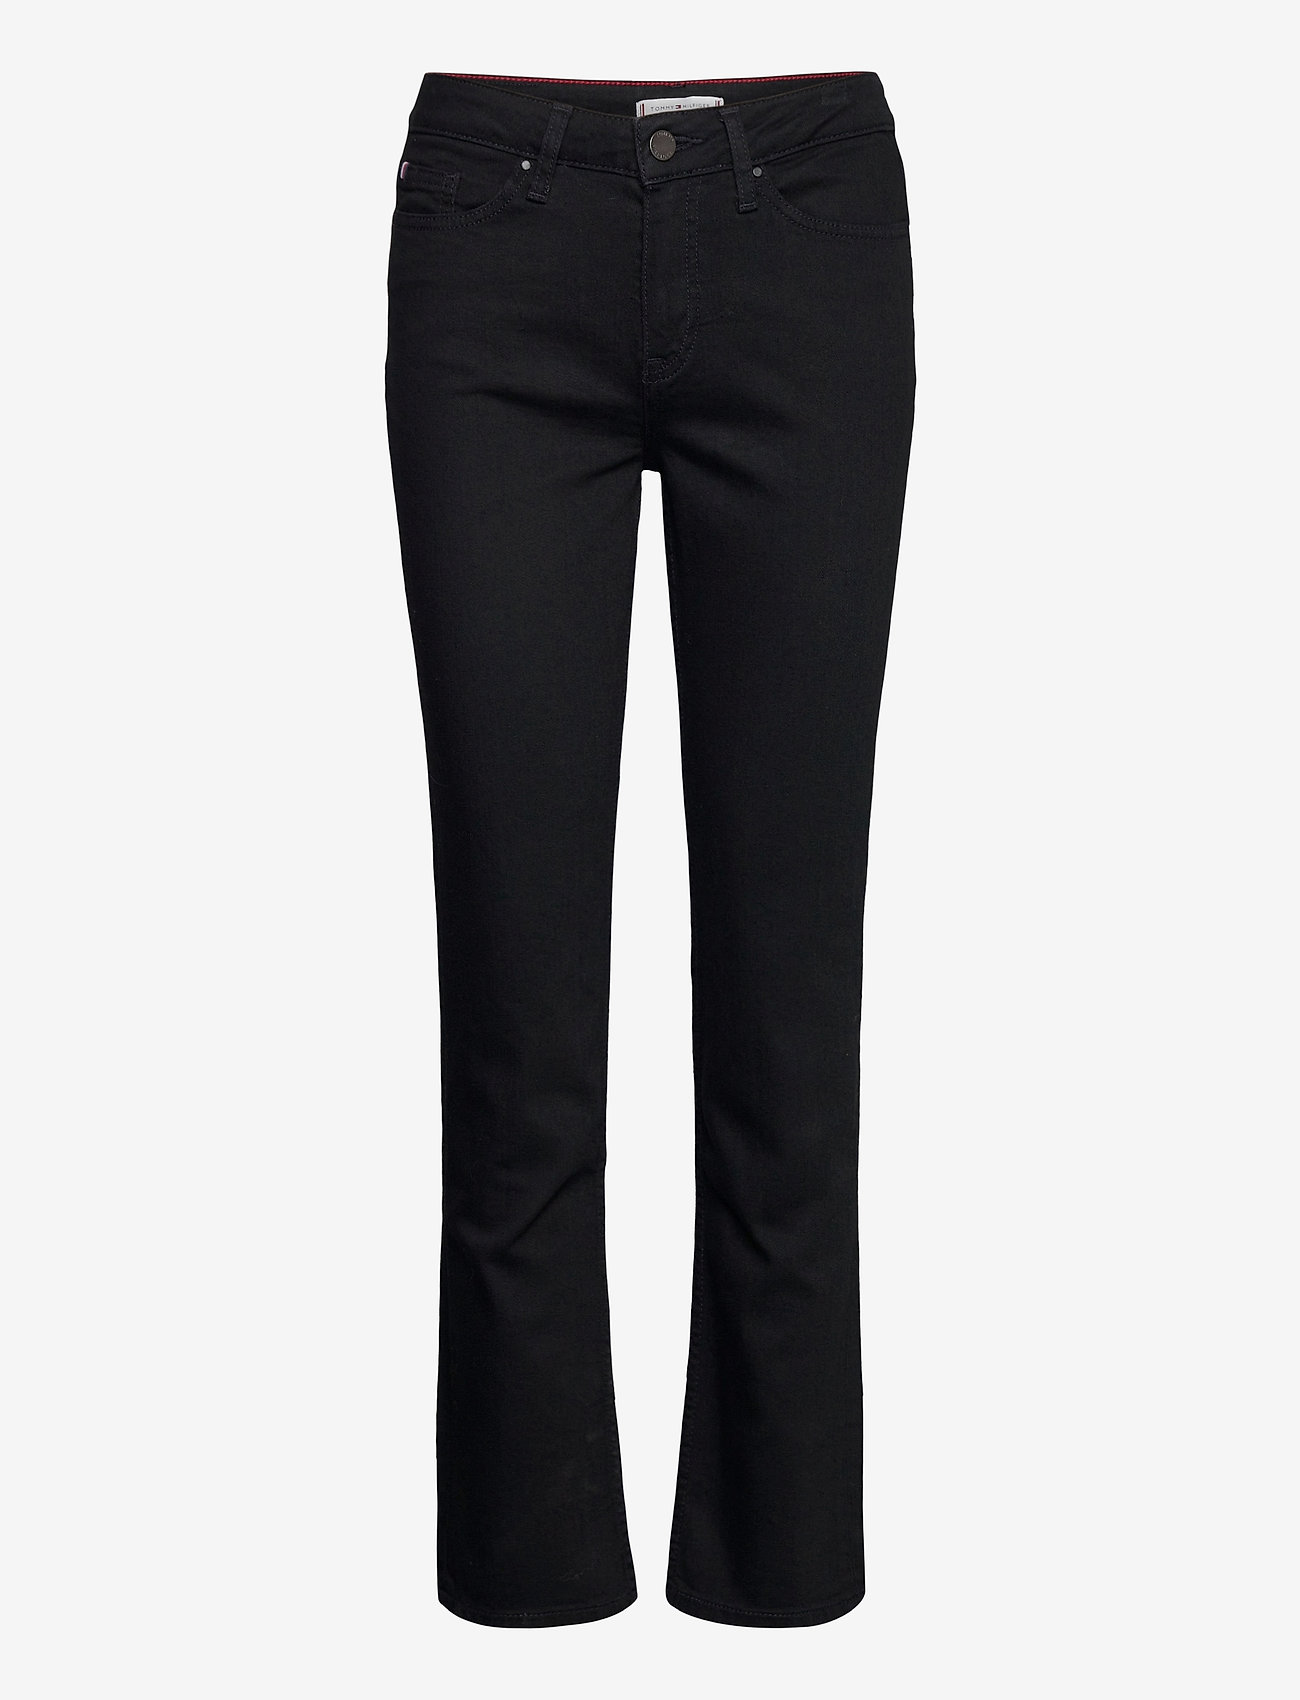 Tommy Hilfiger - ROME STRAIGHT RW BLACK - boot cut jeans - black - 0